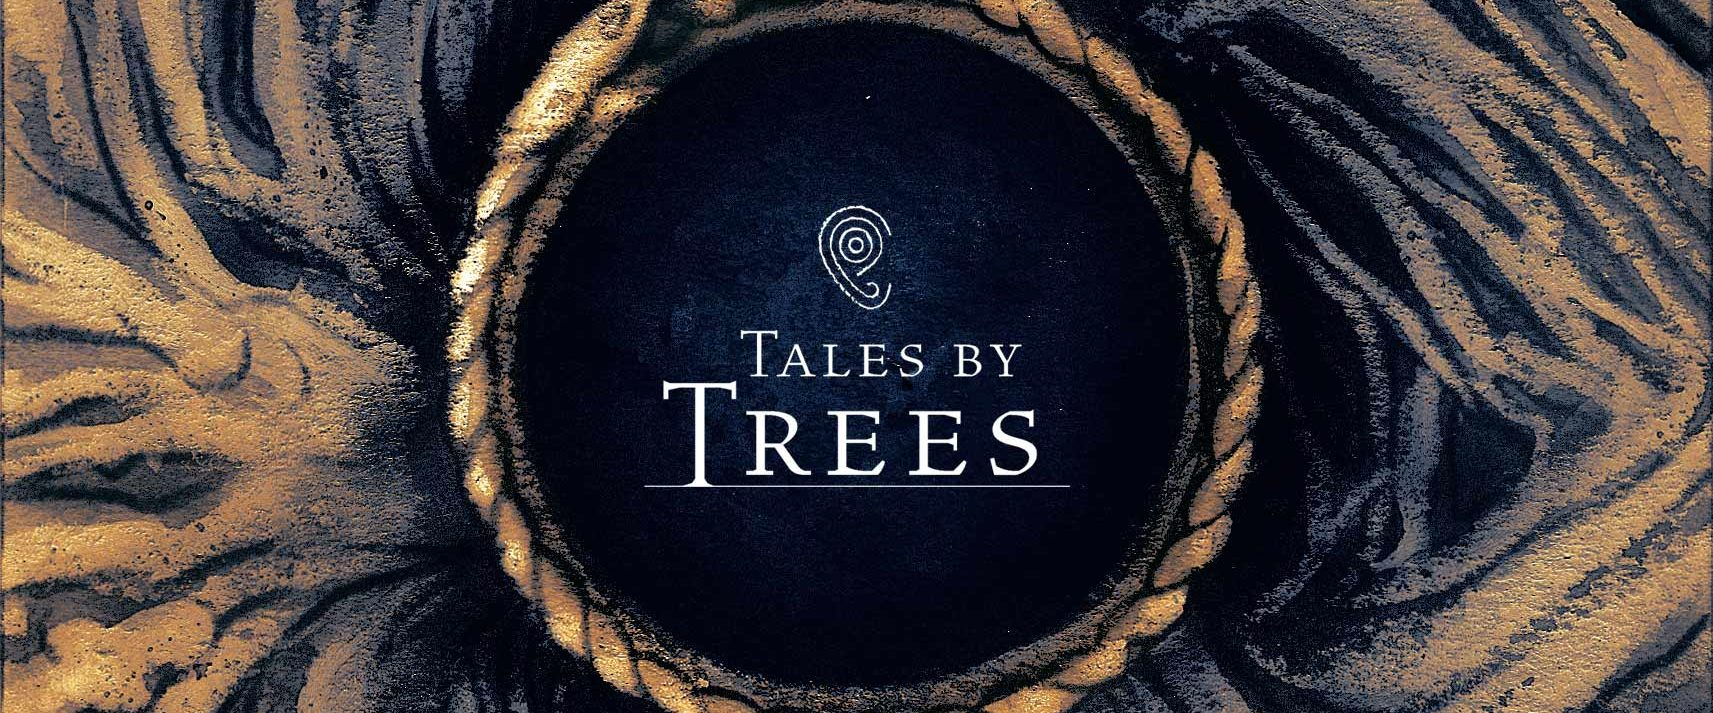 World Tree Tales by Trees